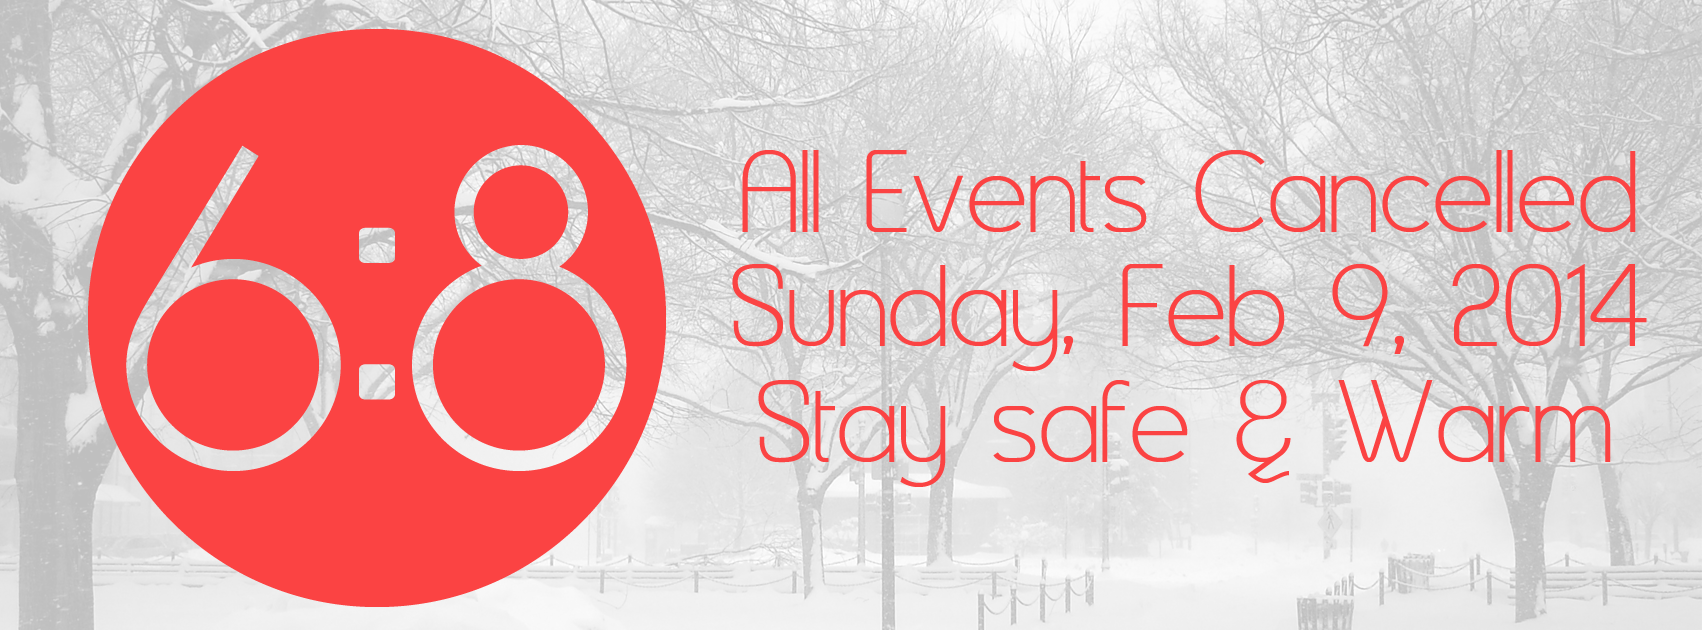 All Events Cancelled – 02/09/2014